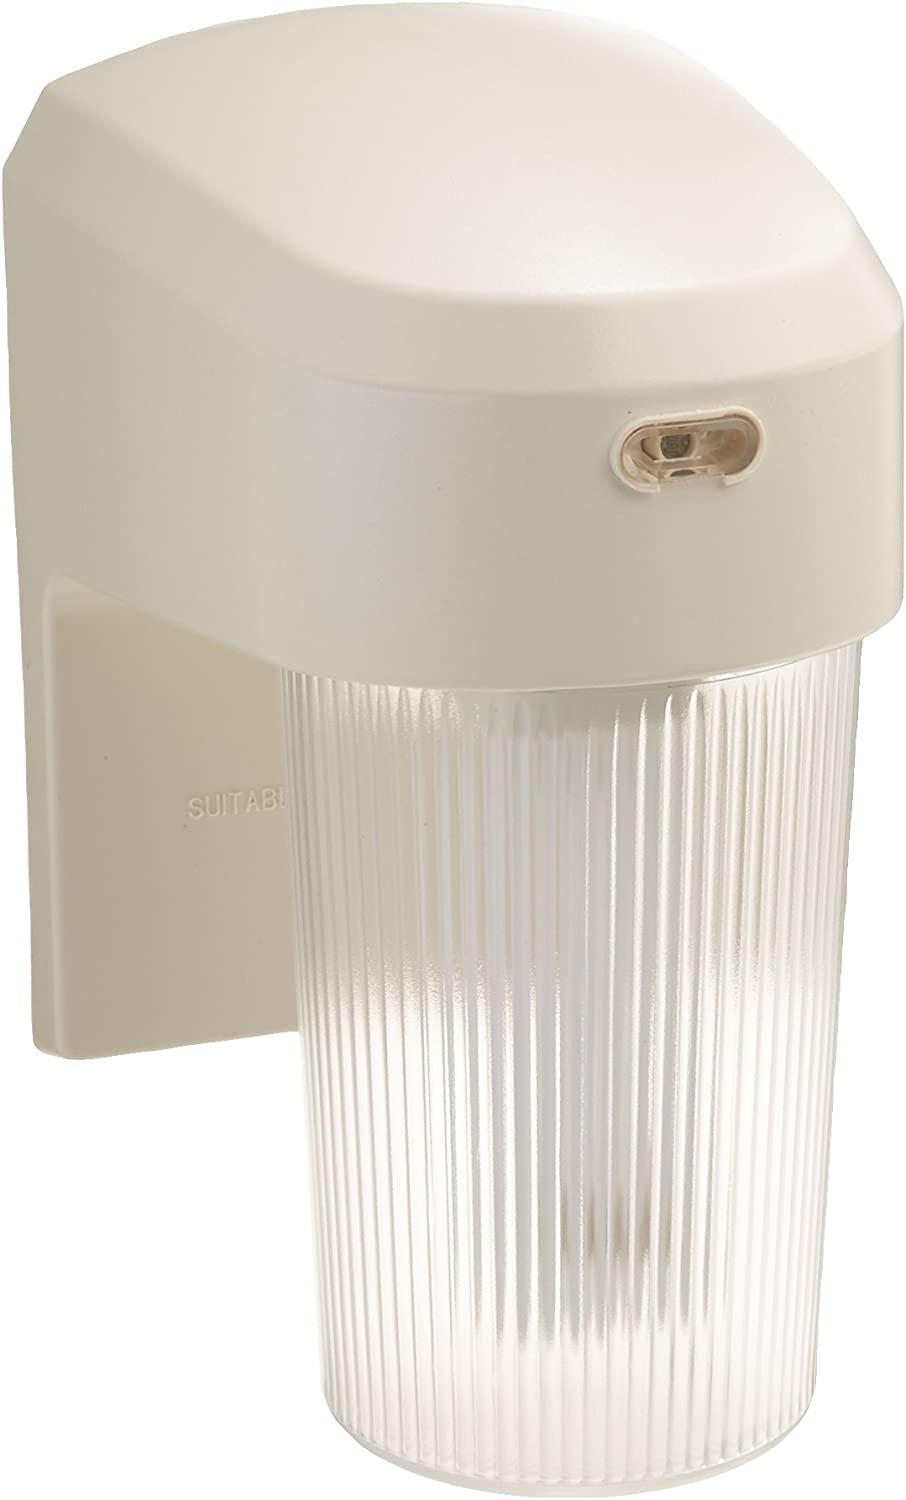 ALL-PRO FE13PCW, 13W Fluorescent Entry Light With Photo Control, White